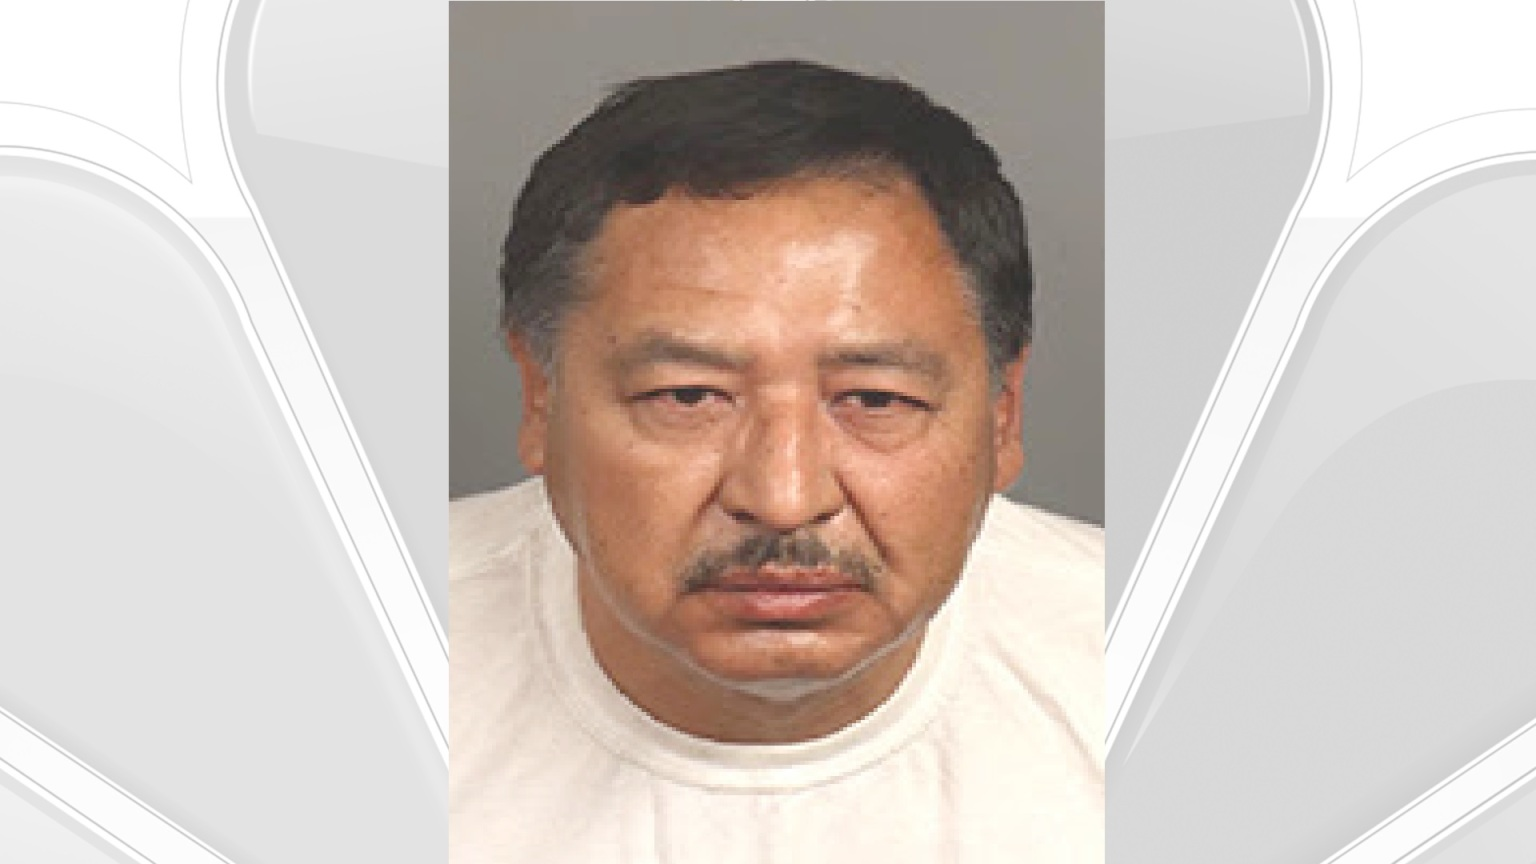 Thermal School Bus Driver Pleads Not Guilty to Molesting 3 Girls